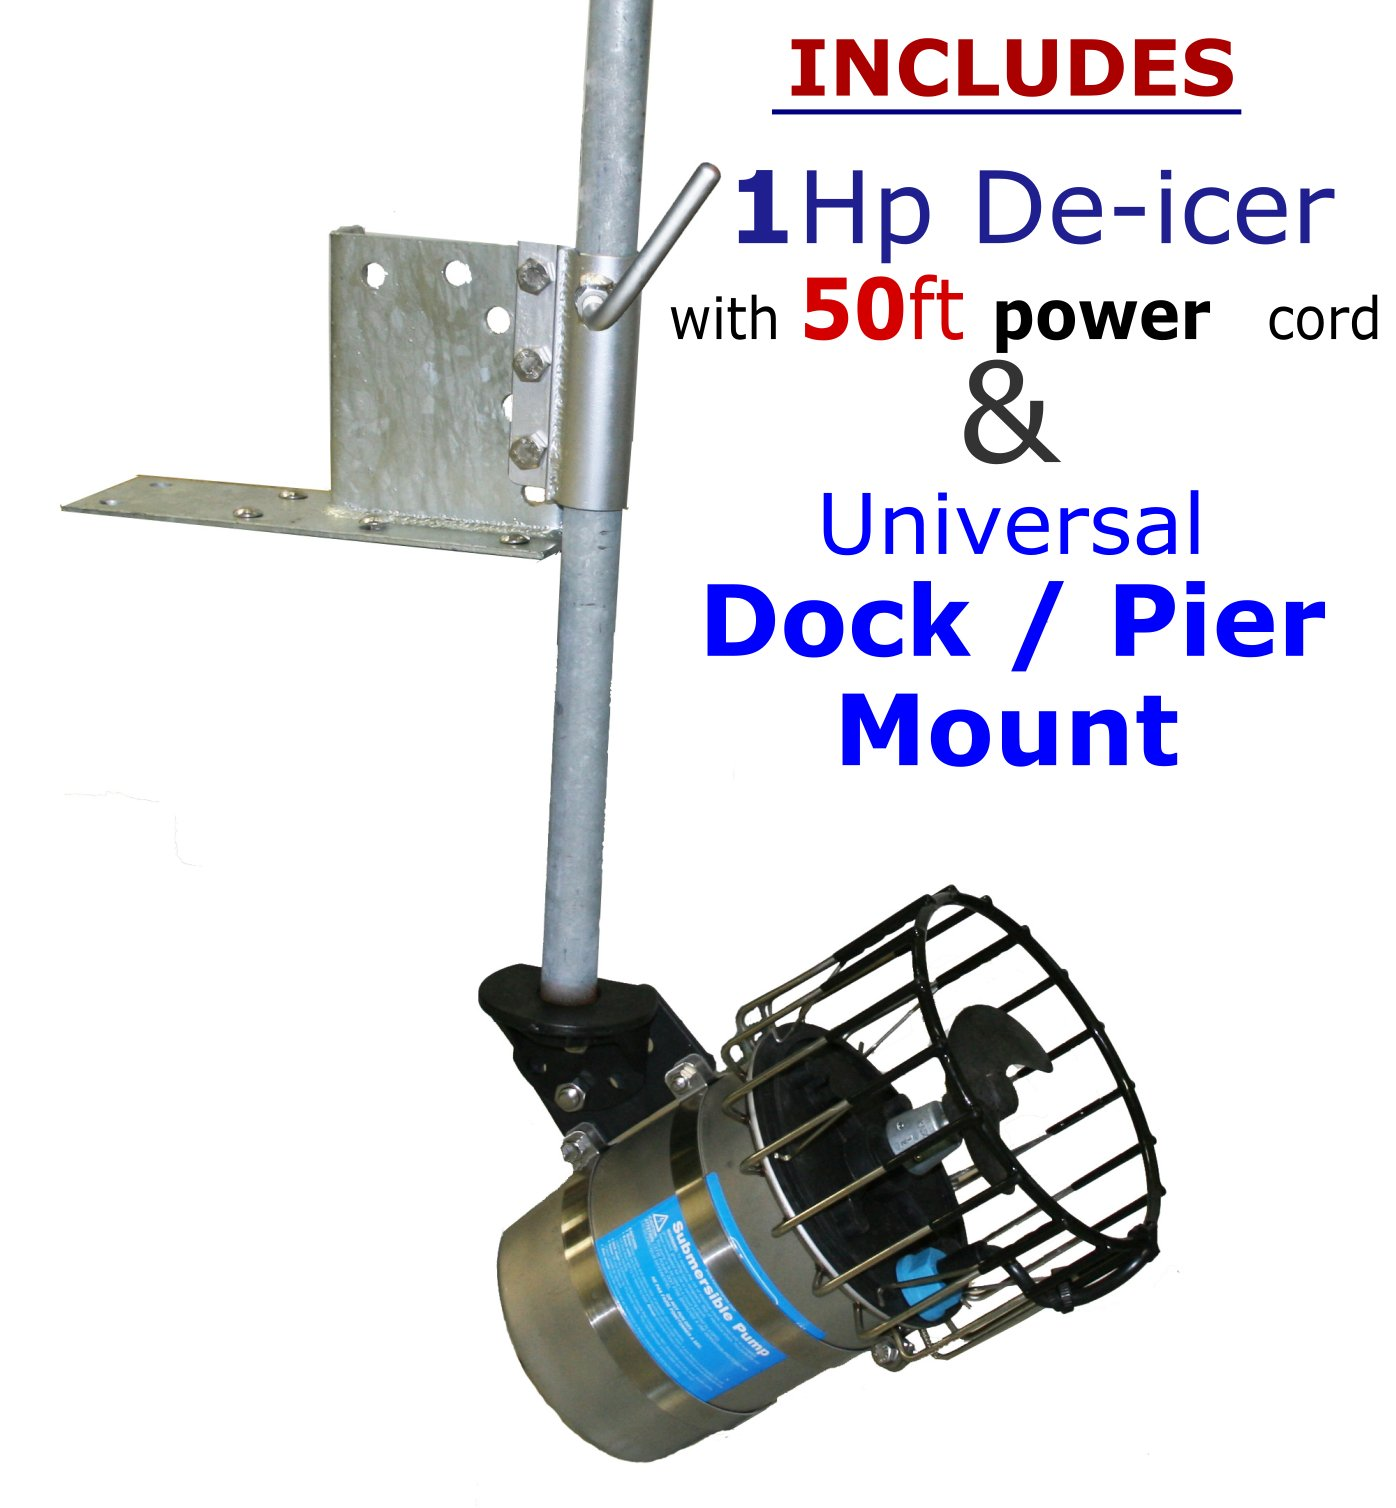 Kasco 1 Hp De-icer w/ 50ft Cord + Universal Dock / Pier Mount - Deicer for Water, Lake, Pond, Marina, Dock, Pier - Model# 4400d50